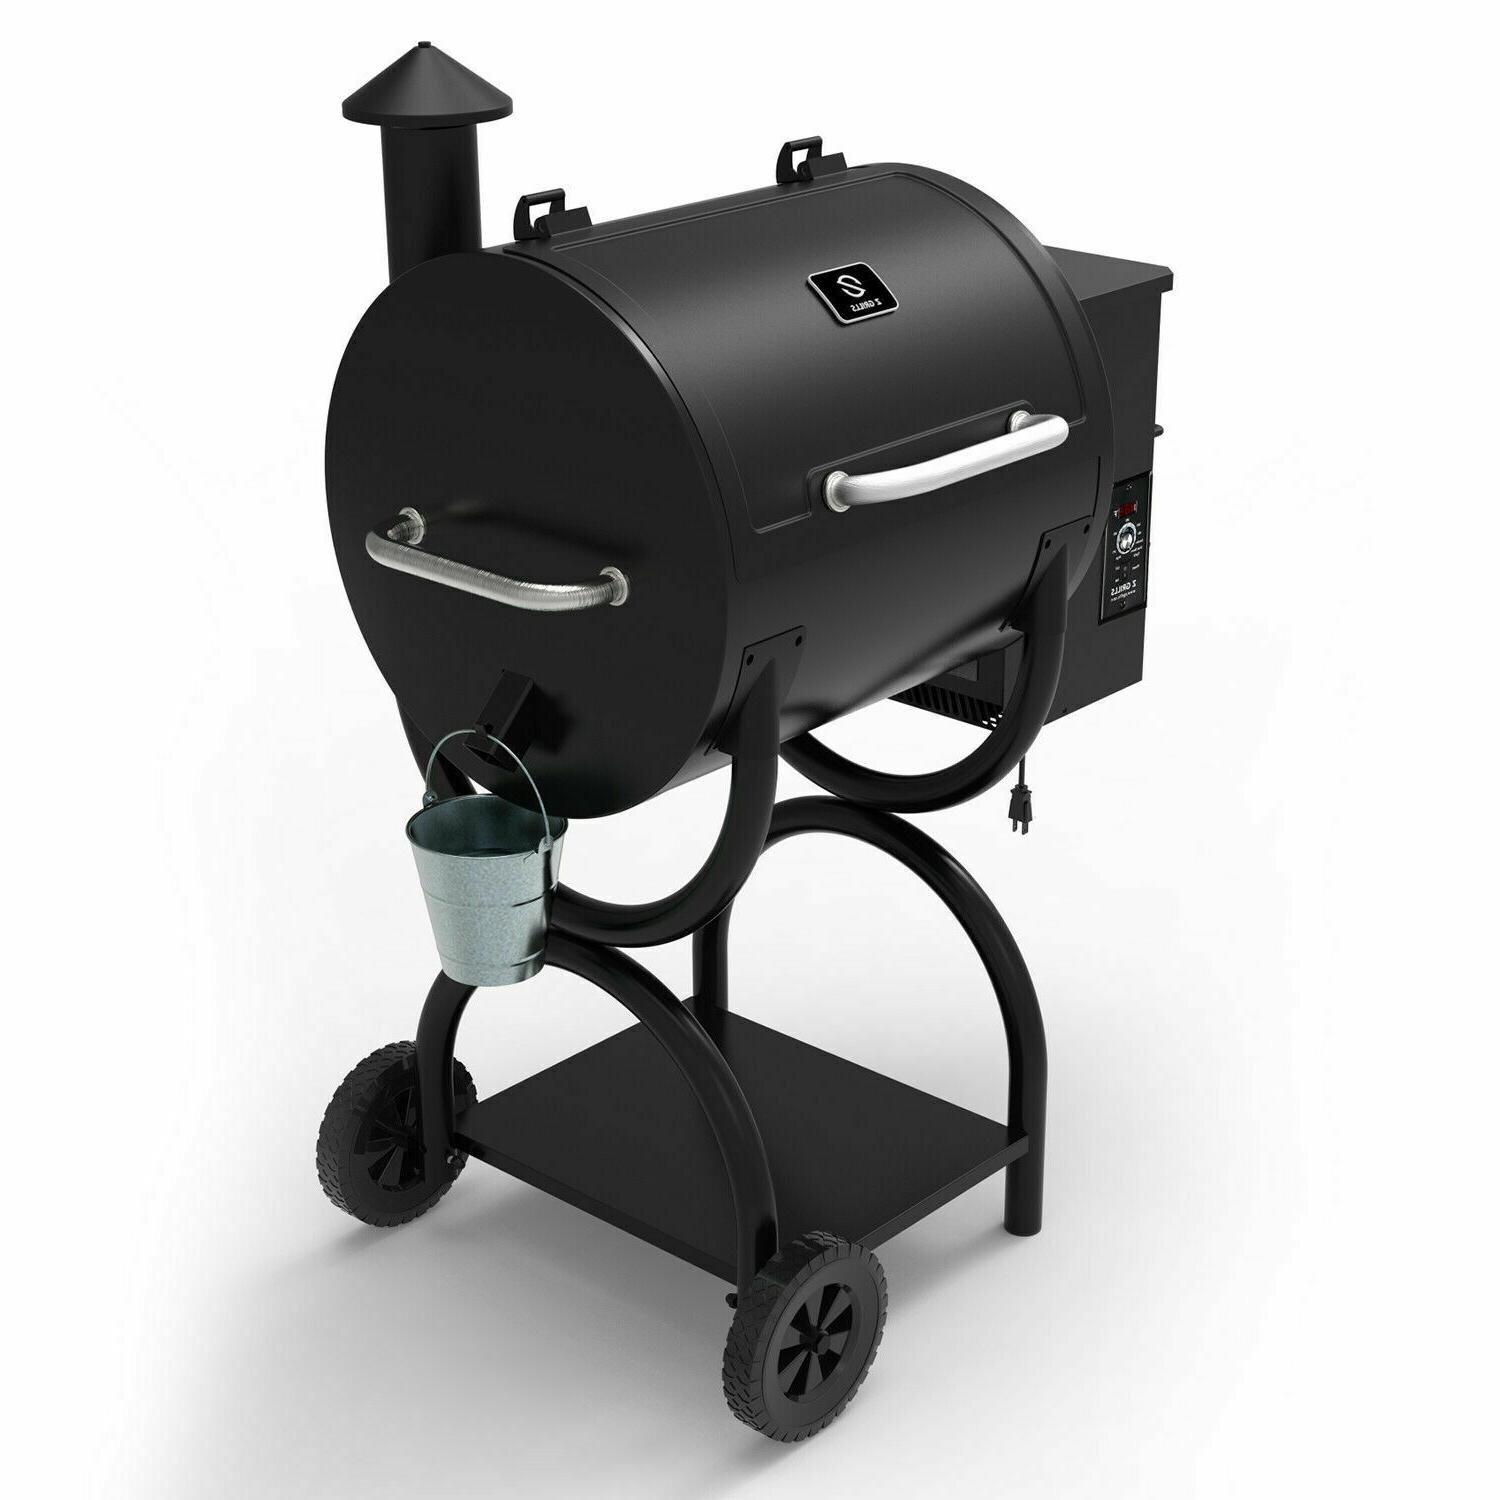 zpg 550a 2020 newest wood pellet grill